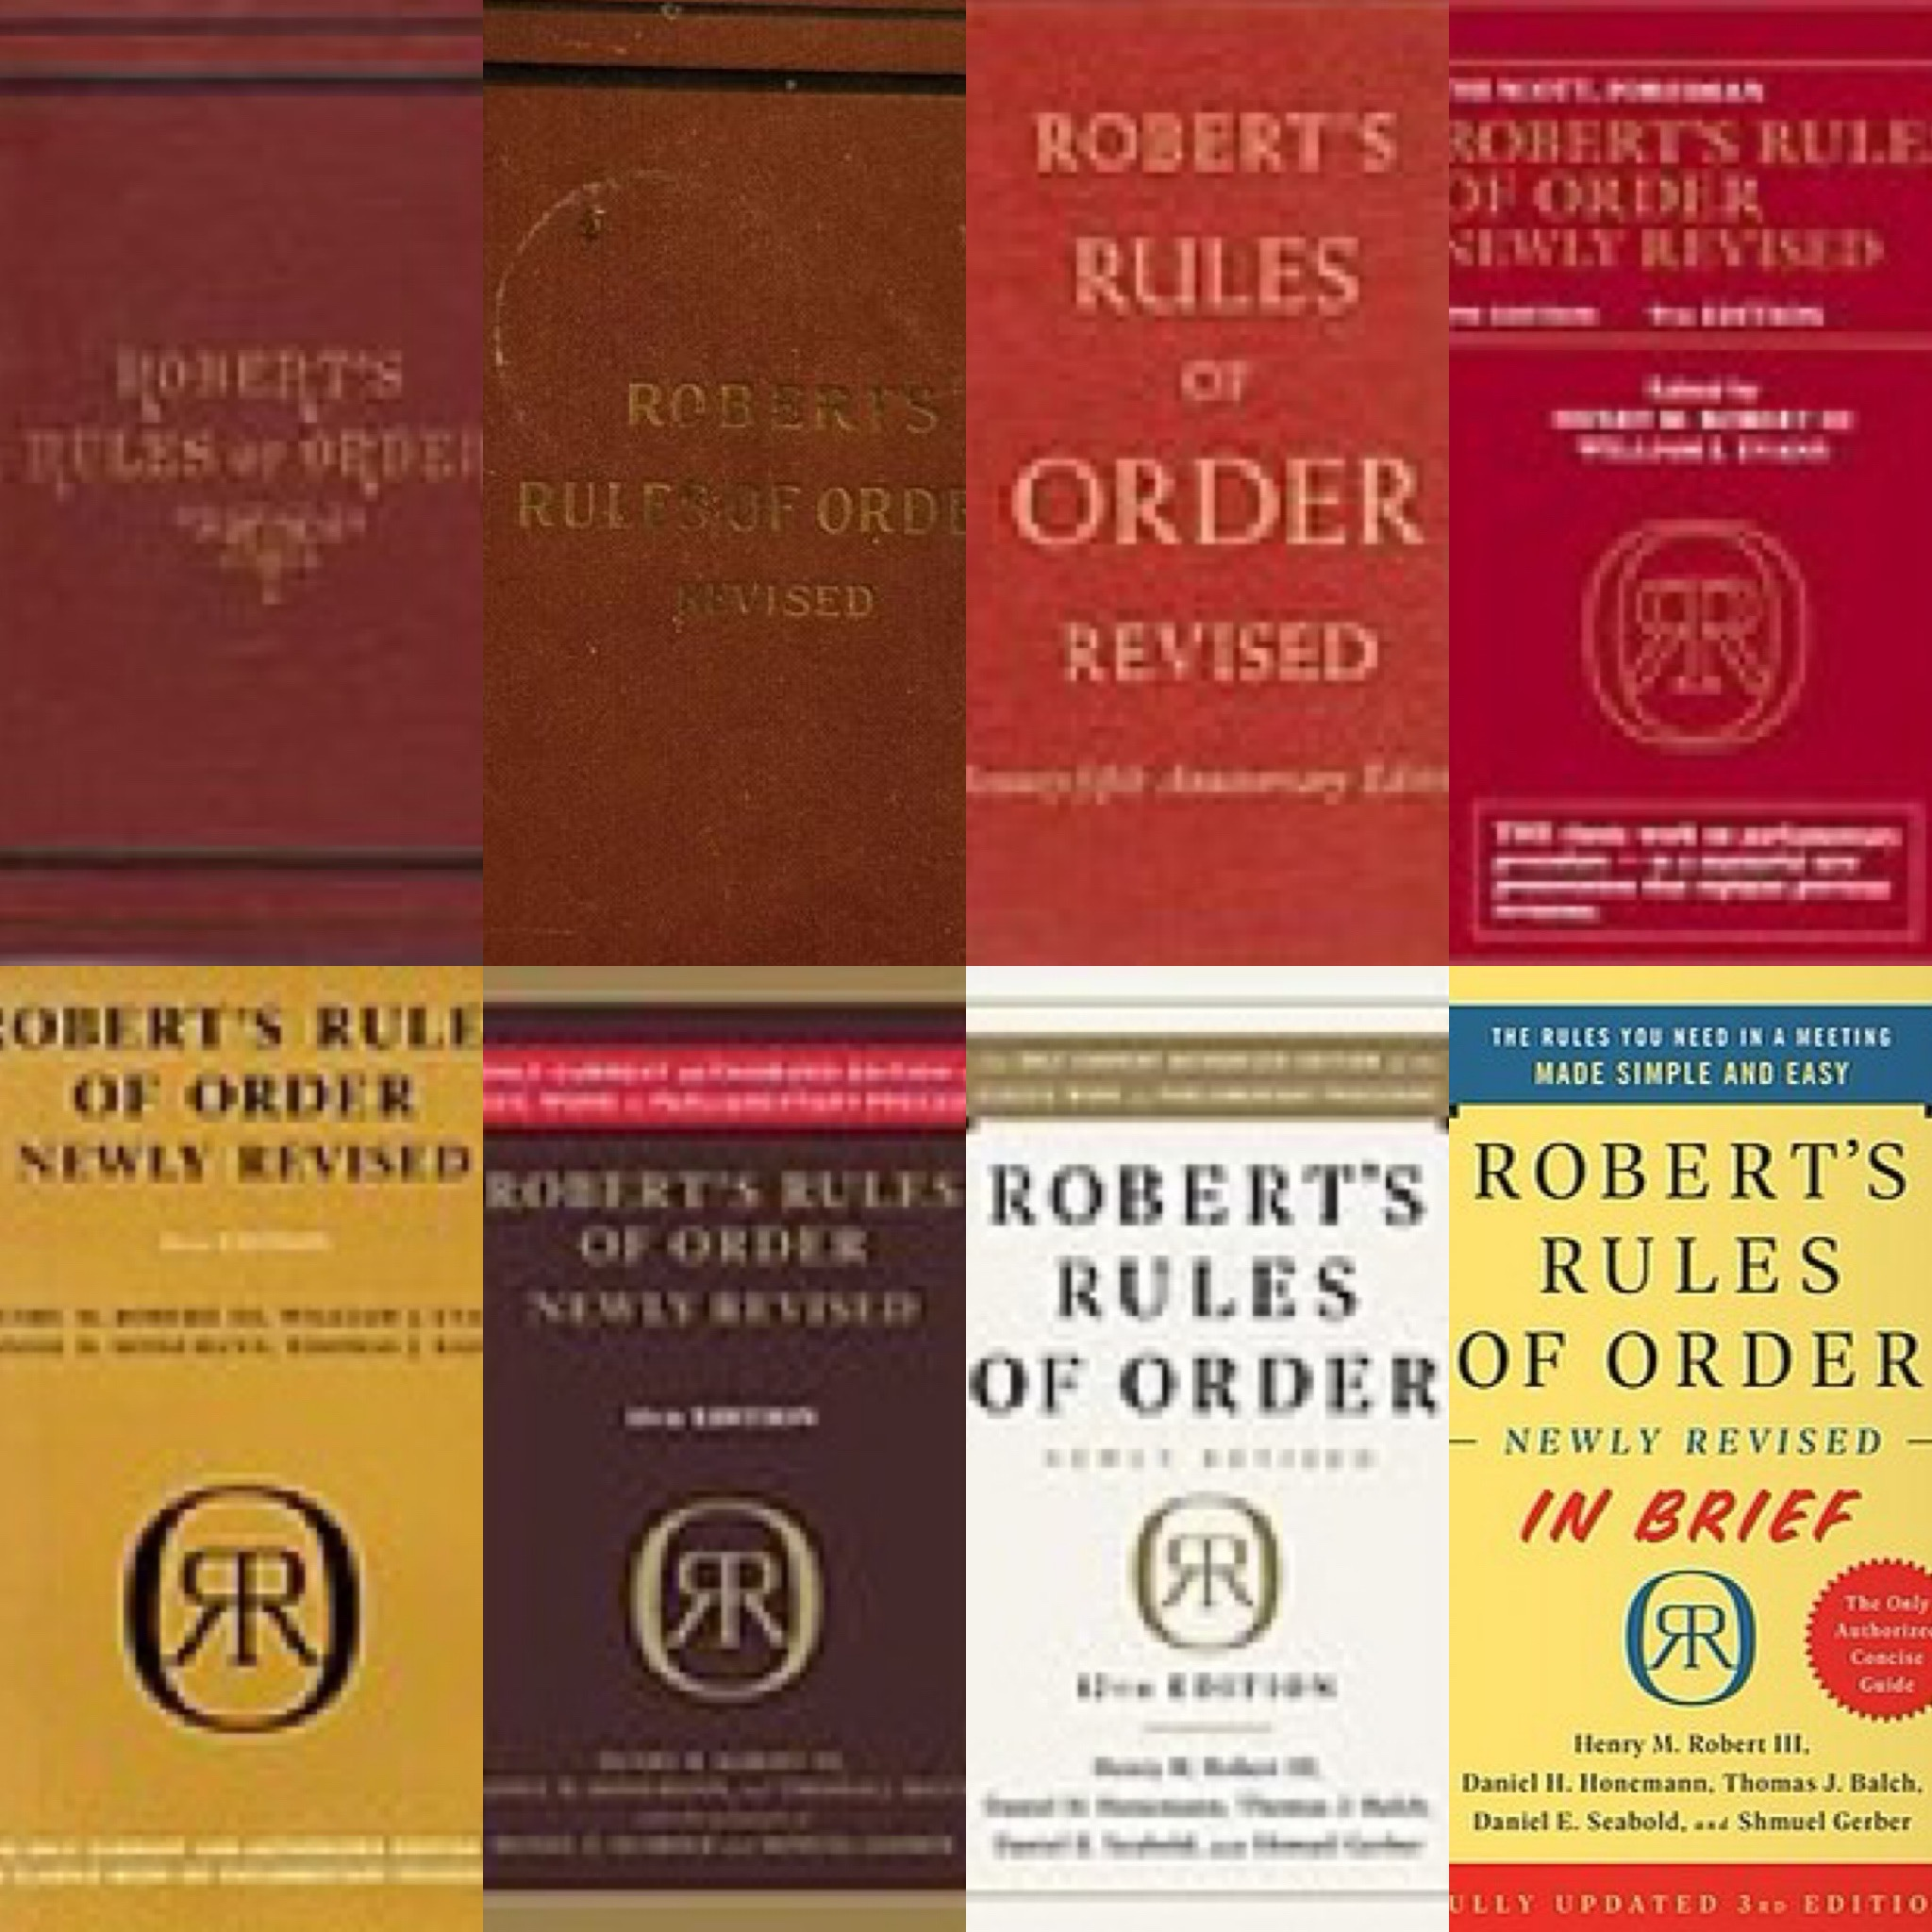 A graphic of a collage showing covers of various editions of Robert's Rules of Order